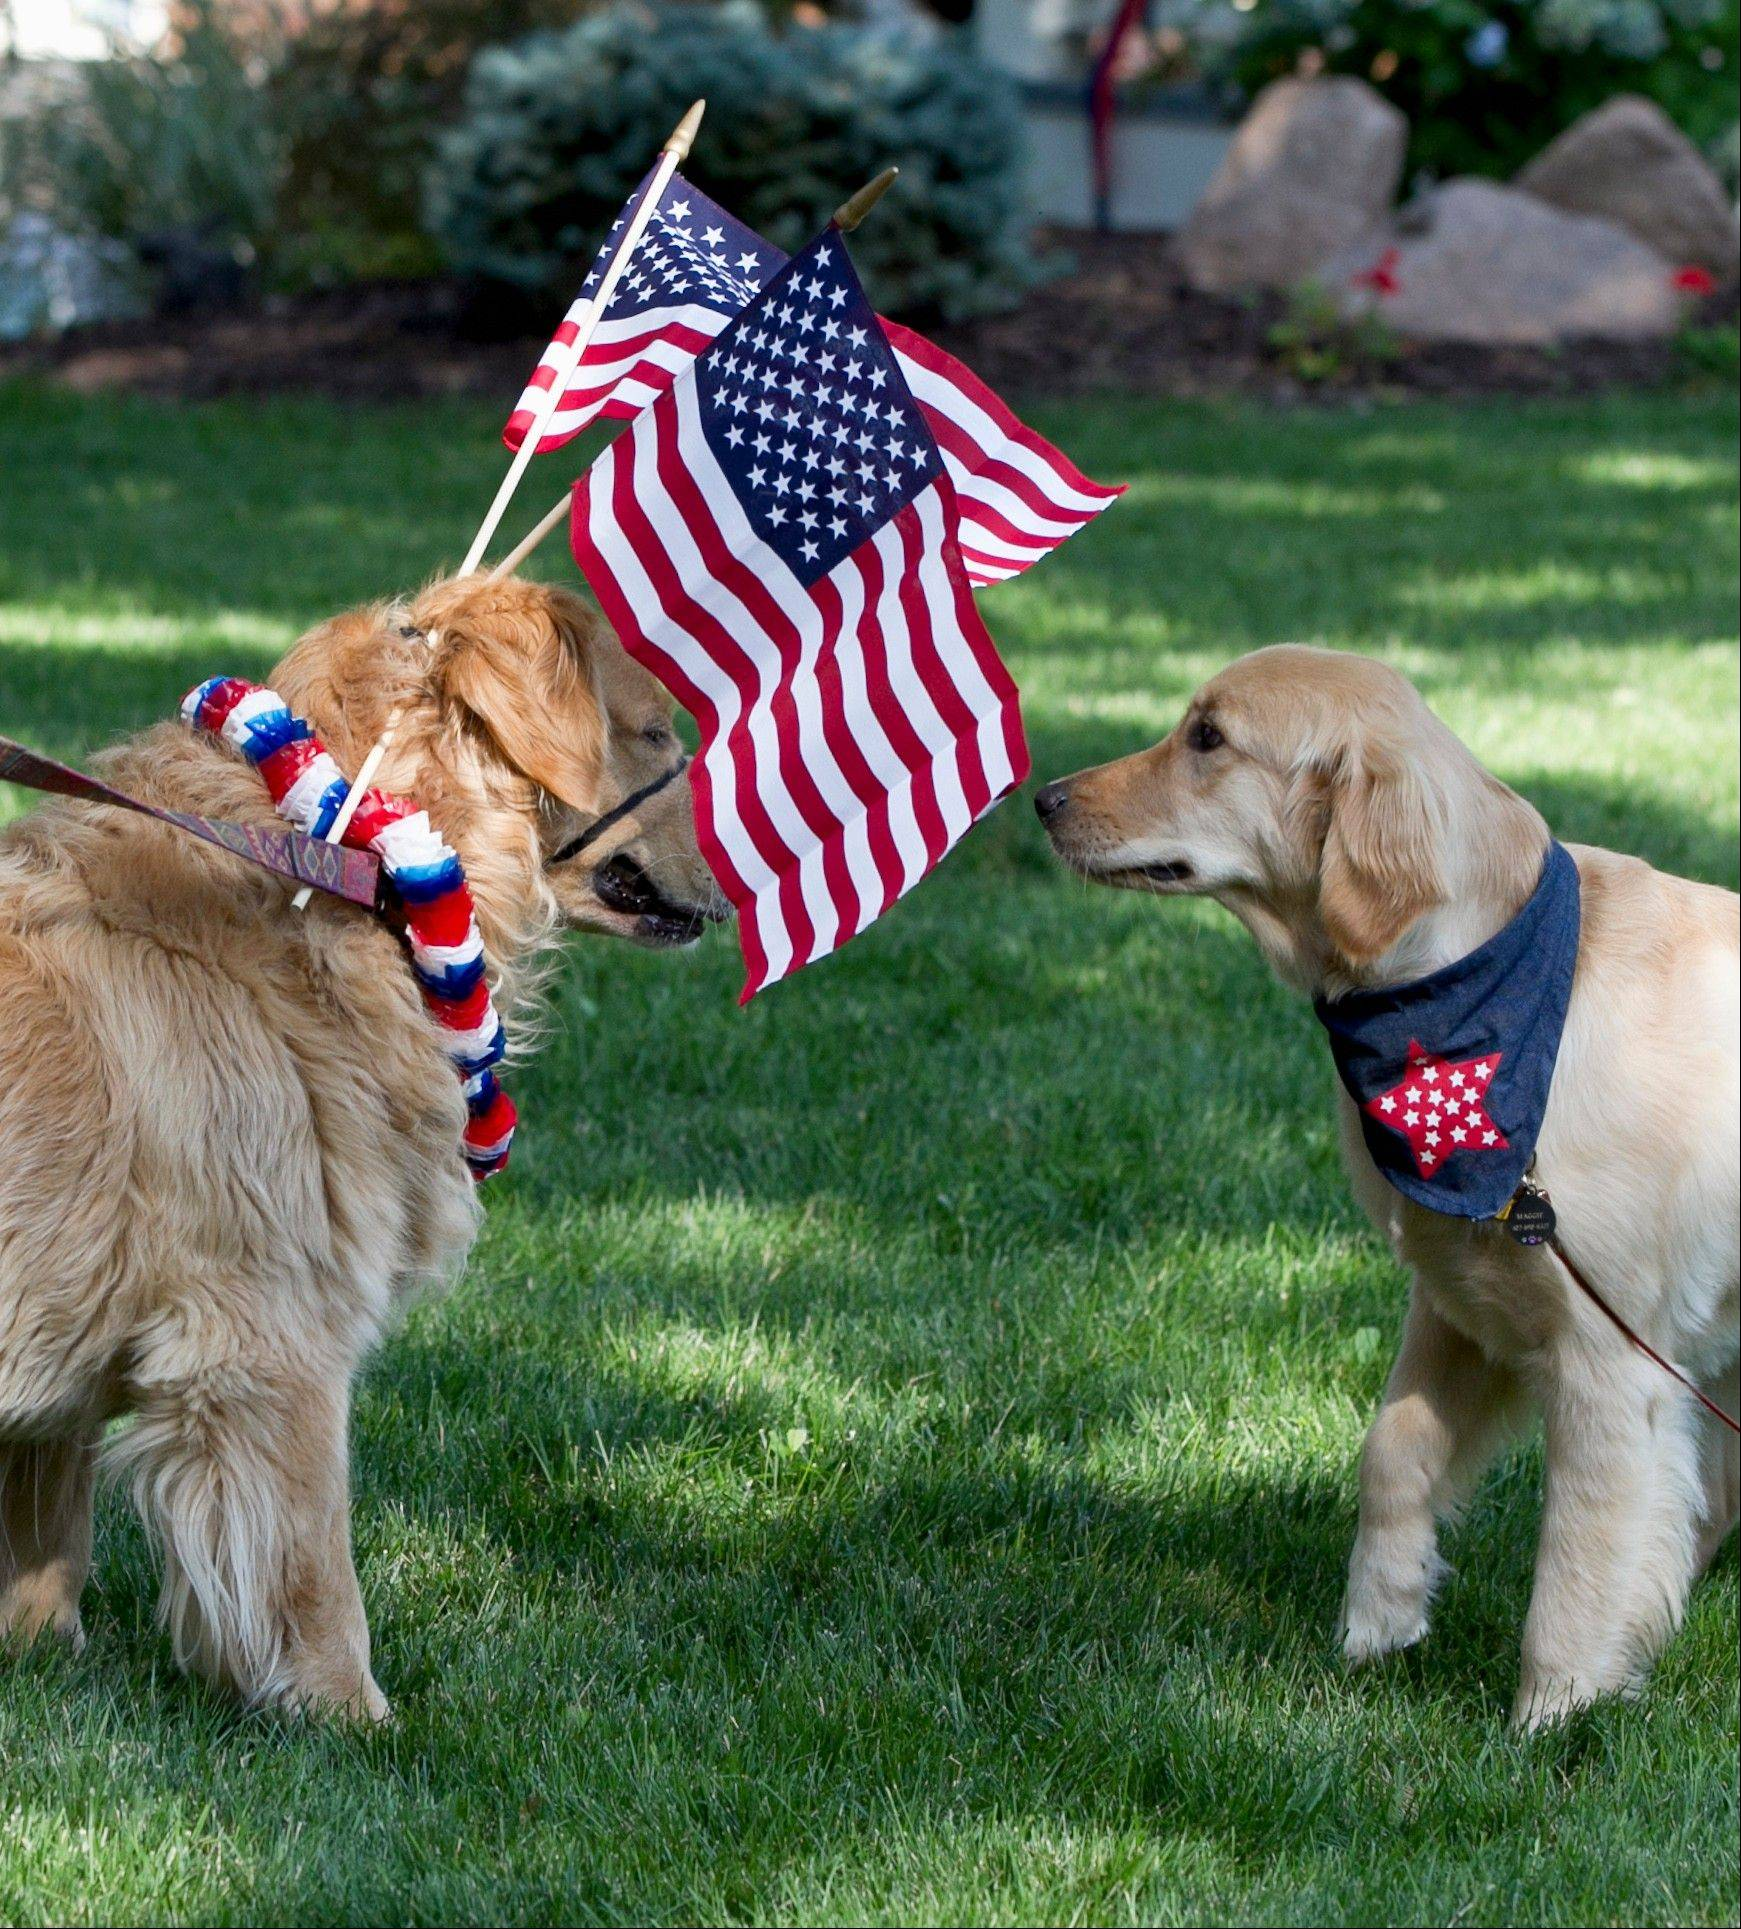 Rommel, a five-year-old golden retriever, left, is decked out with flags as he meets another golden retriever with a patriotic neck band before a Fourth of July parade in Omaha, Neb., Wednesday, July 4, 2012.